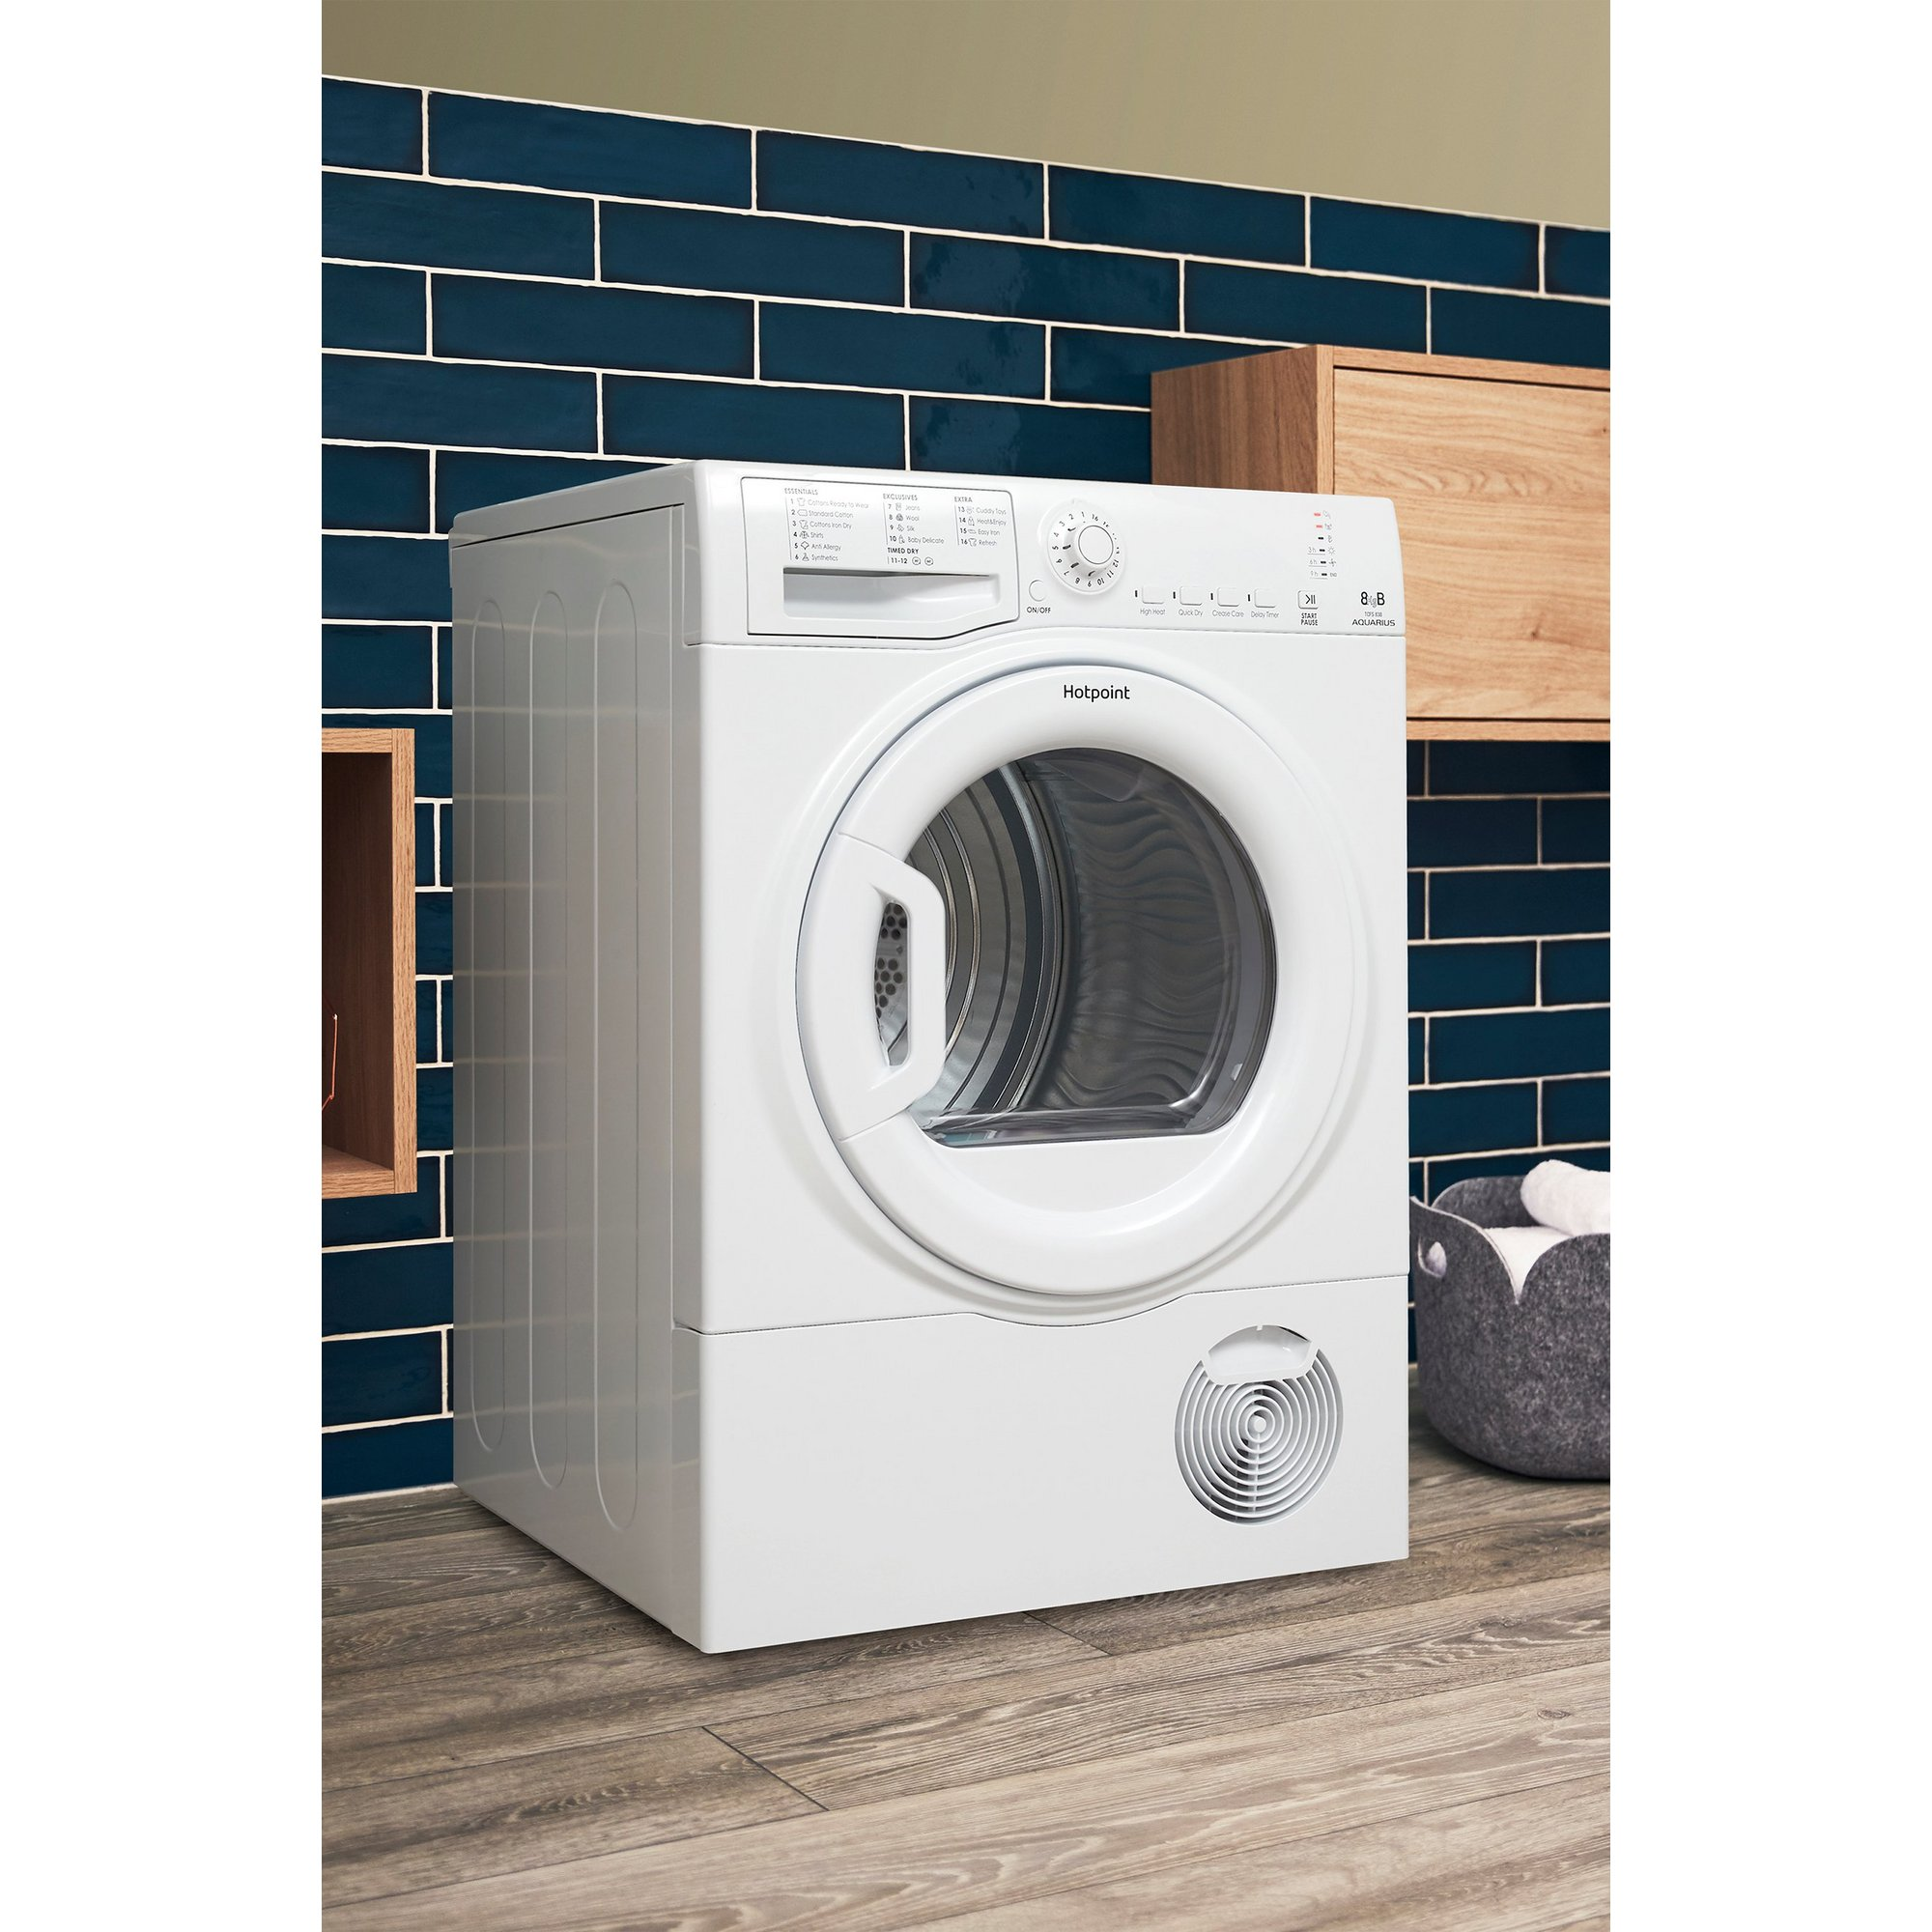 Image of Hotpoint 8kg Condenser Tumble Dryer